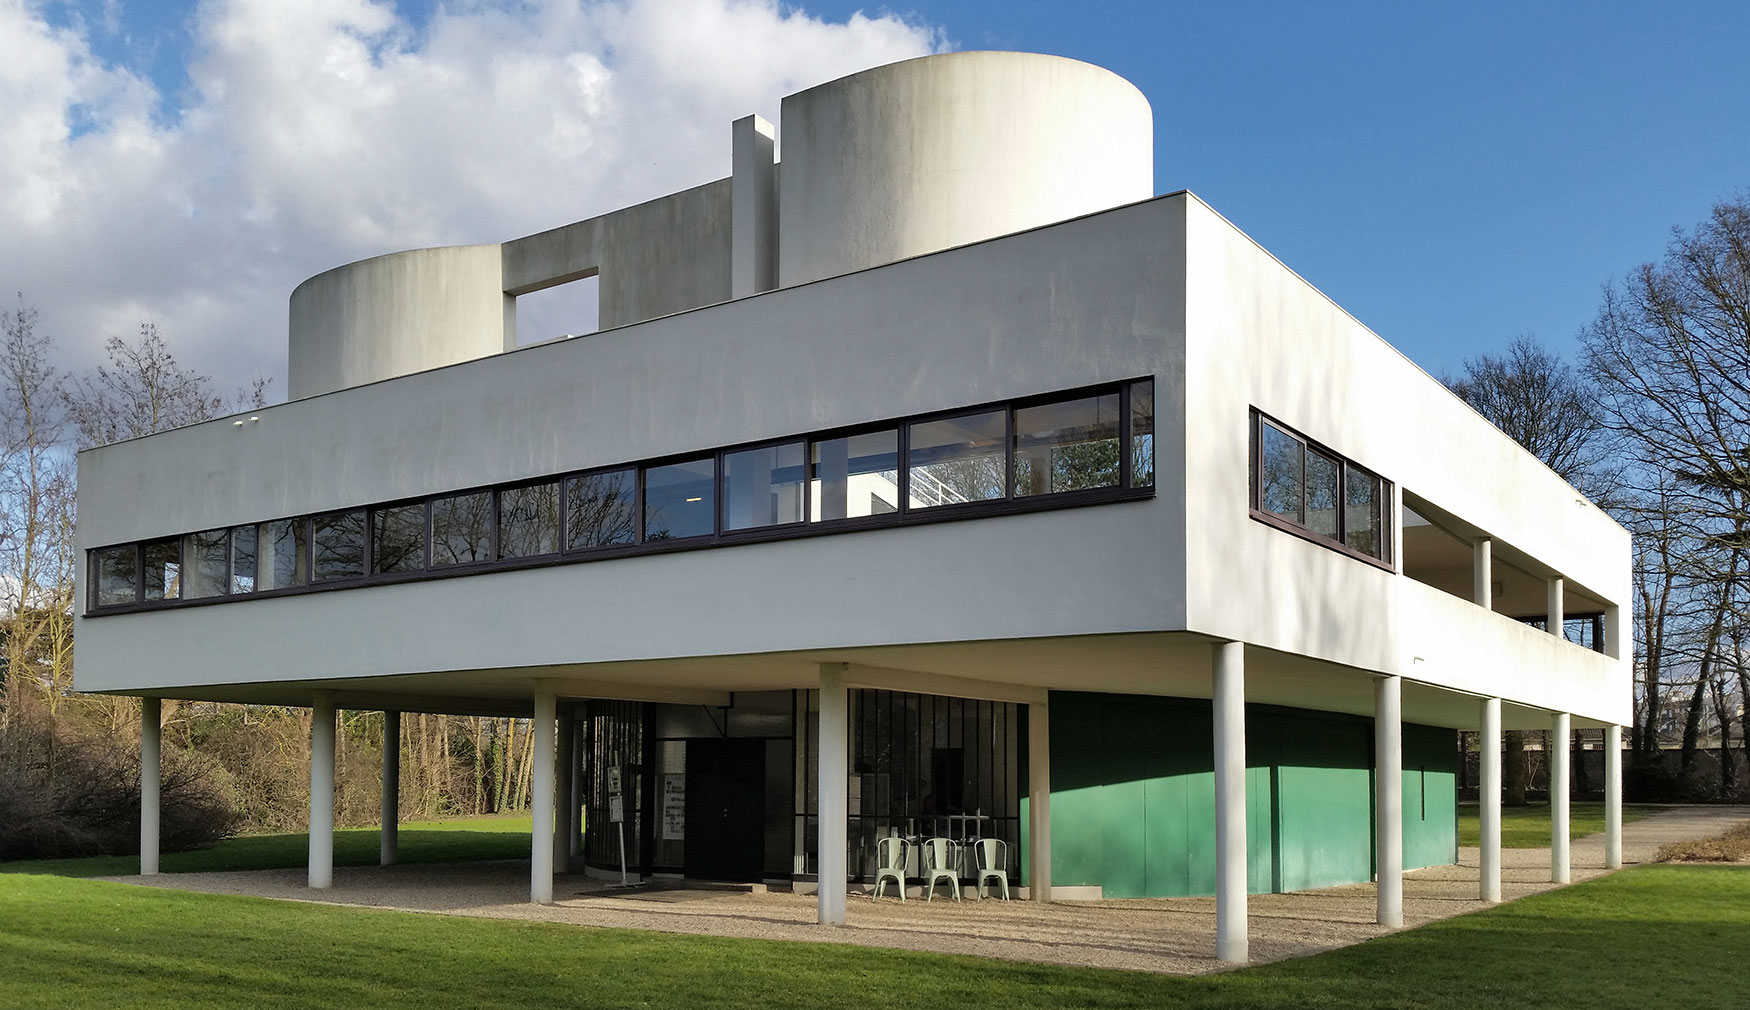 Villa Savoye designed by Le Corbusier